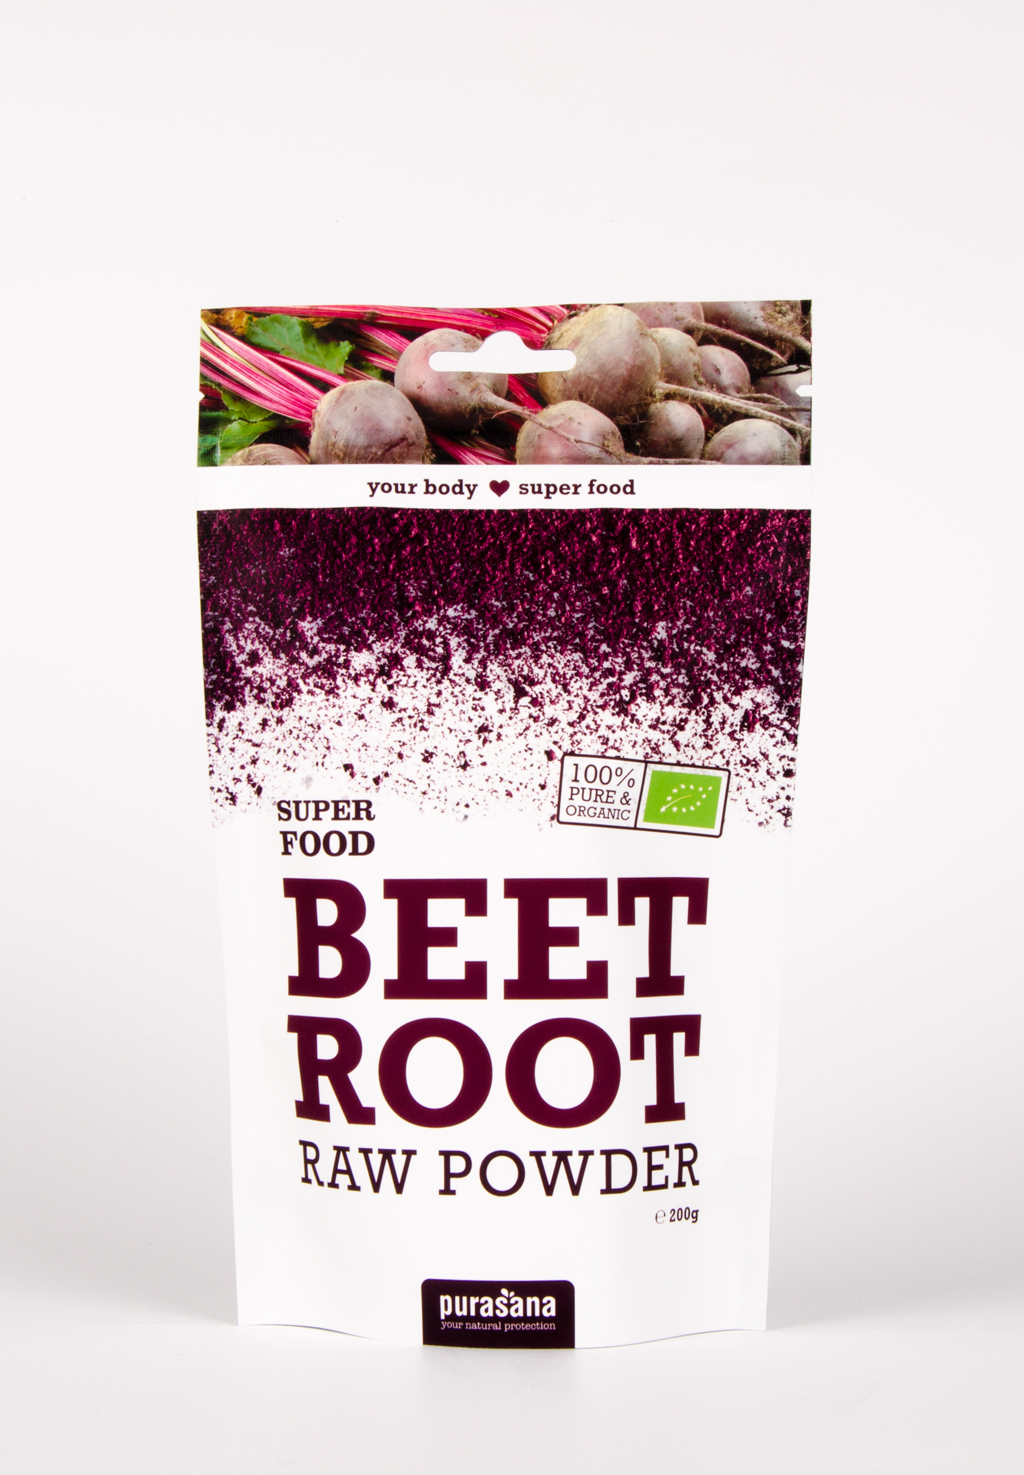 BEETROOT POWDER FRONT